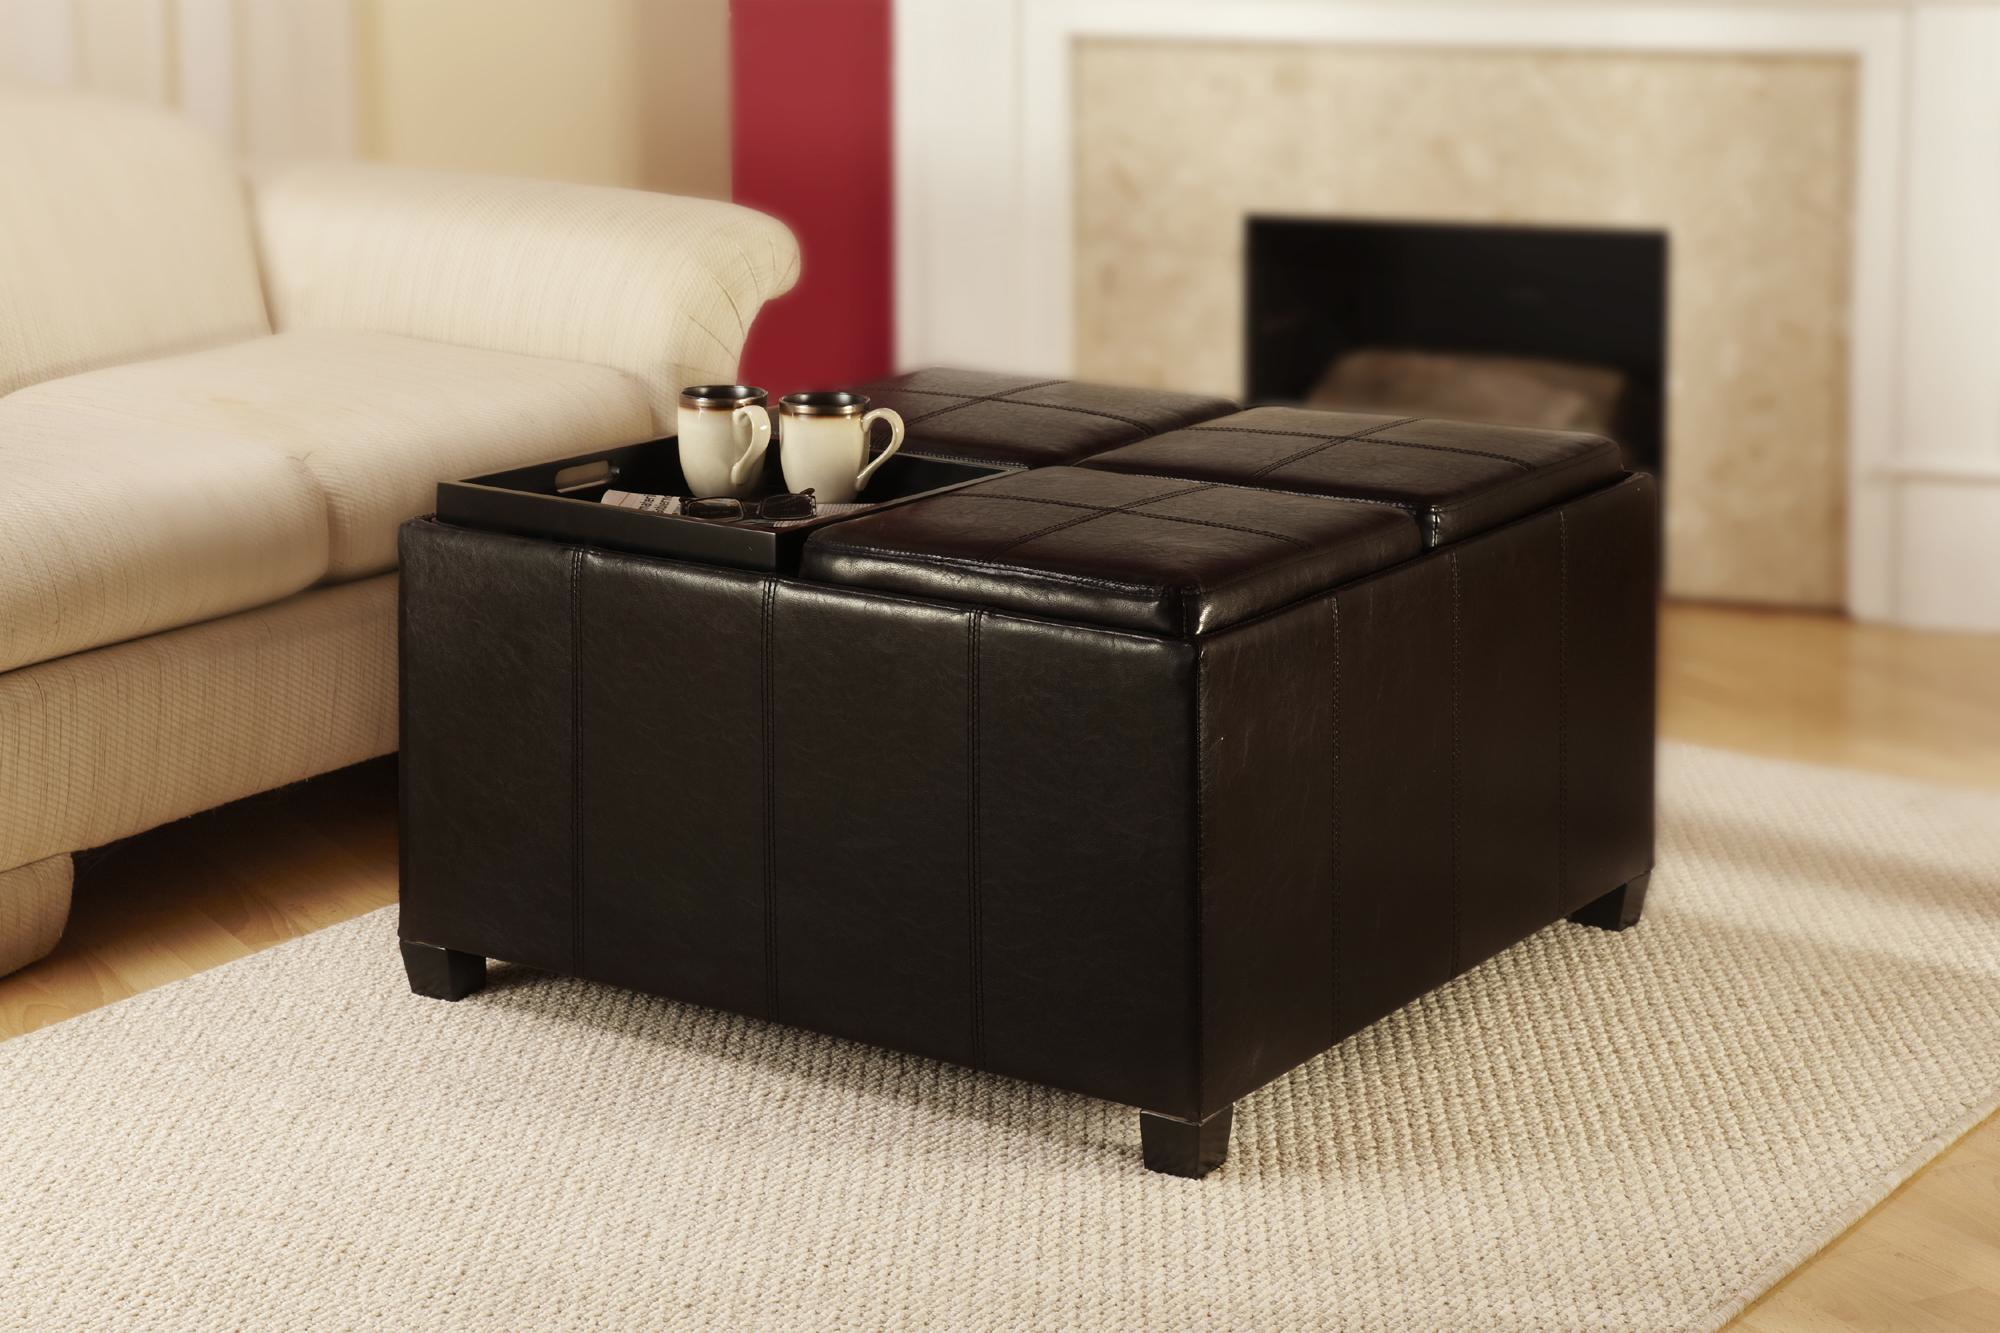 Extra Large Ottoman for Large Space Living Room Design: Extra Large Ottoman | Leather Ottoman Coffee Tables | Square Coffee Table With Ottomans